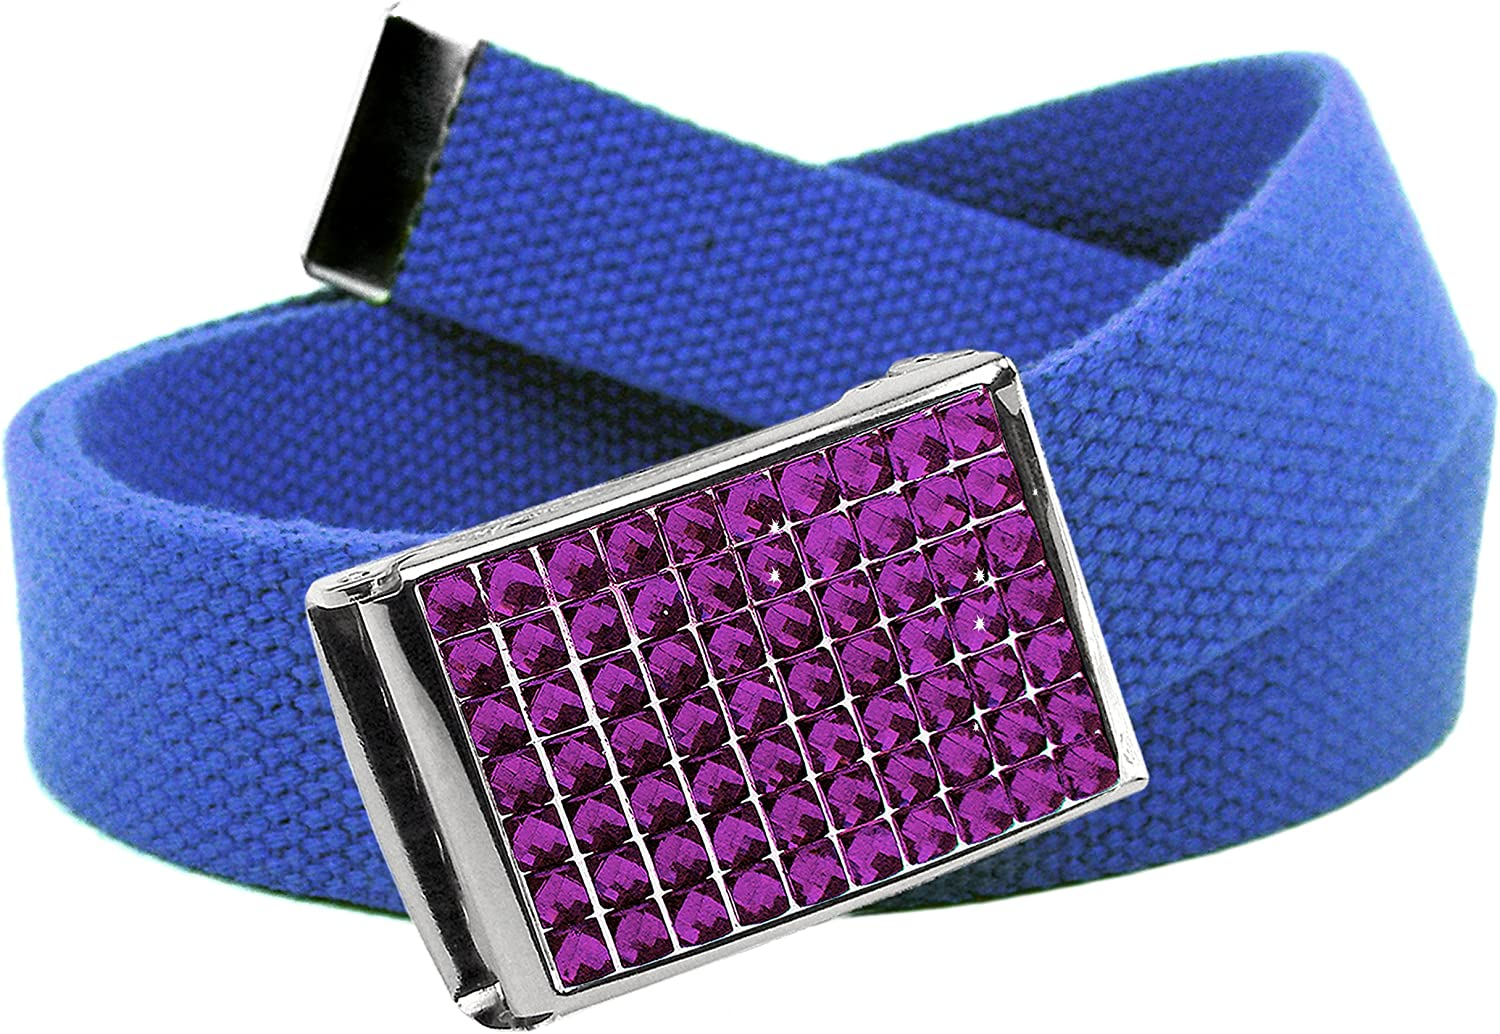 Buckle-Down Mens Web Belt Tattoo Johnny Hummingbird 1.25 Multicolor Wide-Fits up to 42 Pant Size